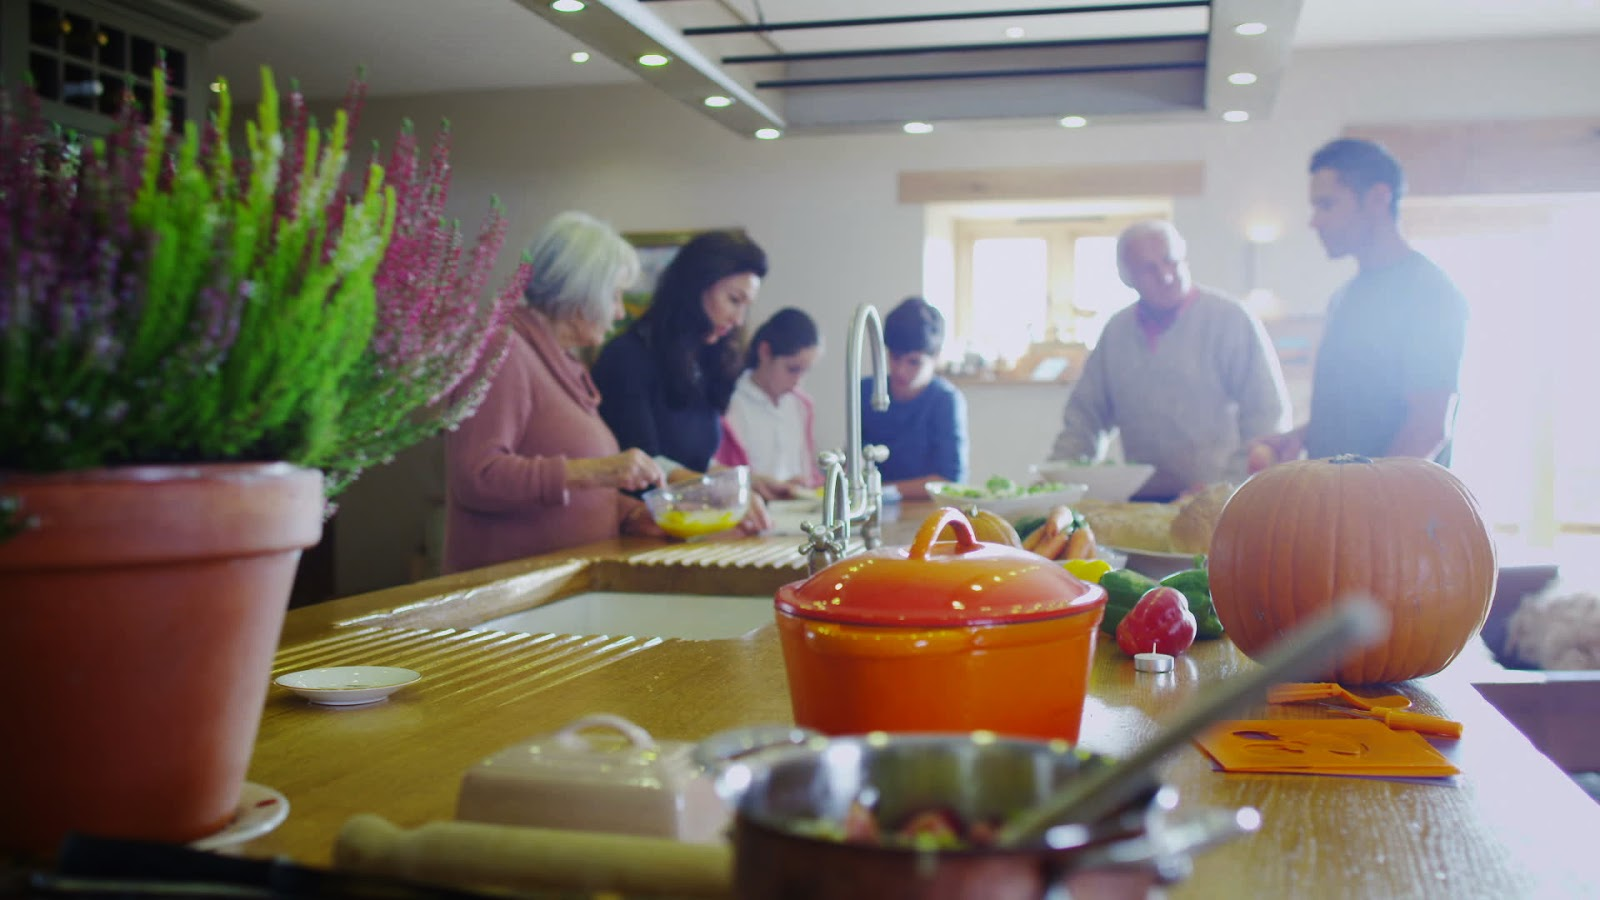 Family preparing a meal together in silence